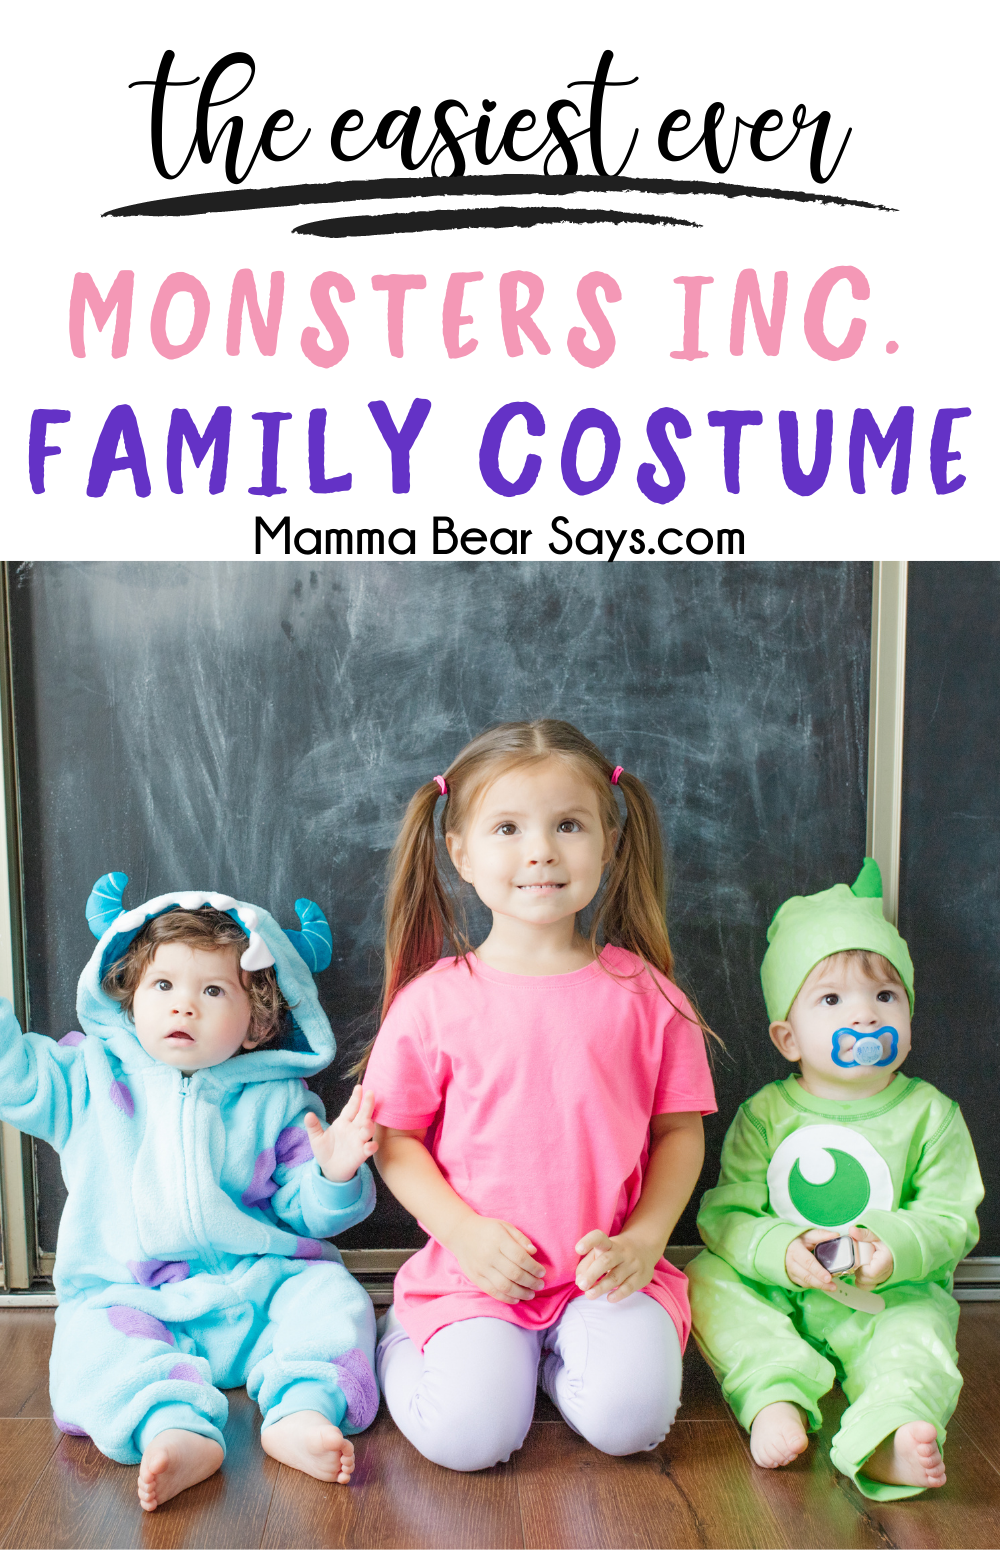 This Monsters INC family costume is so easy to put together and so adorable! My favorite thing is you can use the items again and again!I This is the perfect costume for the Disney loving family like mine! #monstersinc #diycostume #costume #halloween #halloweentime #halloweencostume #halloween2020 #diycostume #diycostumes #diy #disneycostume #disneydiy #diydisneycostume #mikeandsulley #sulley #monstersuniversity #pixar